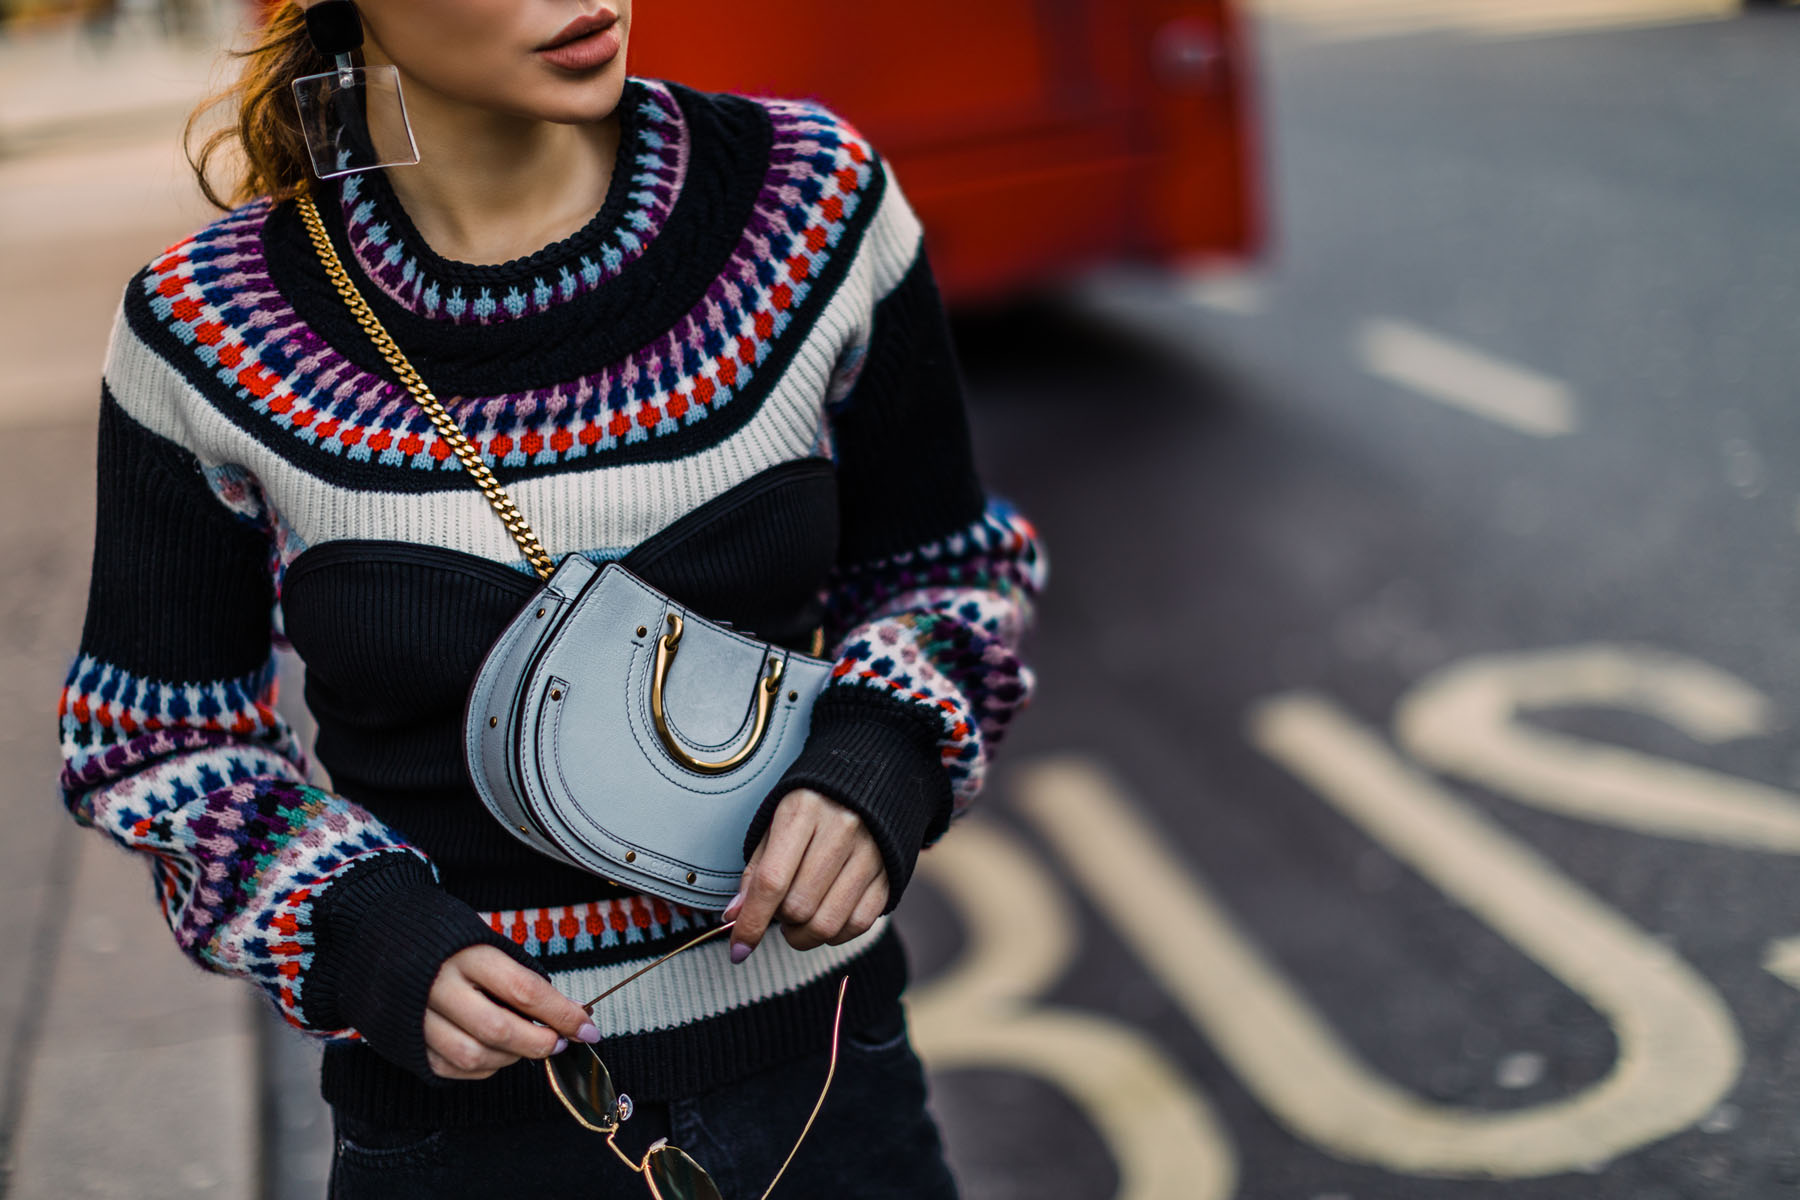 London Fashion Week Highlights - Burberry Sweater, Chloe Bag, and Sneakers, LFW Street Style, London Fashion Week Outfits // Notjessfashion.com